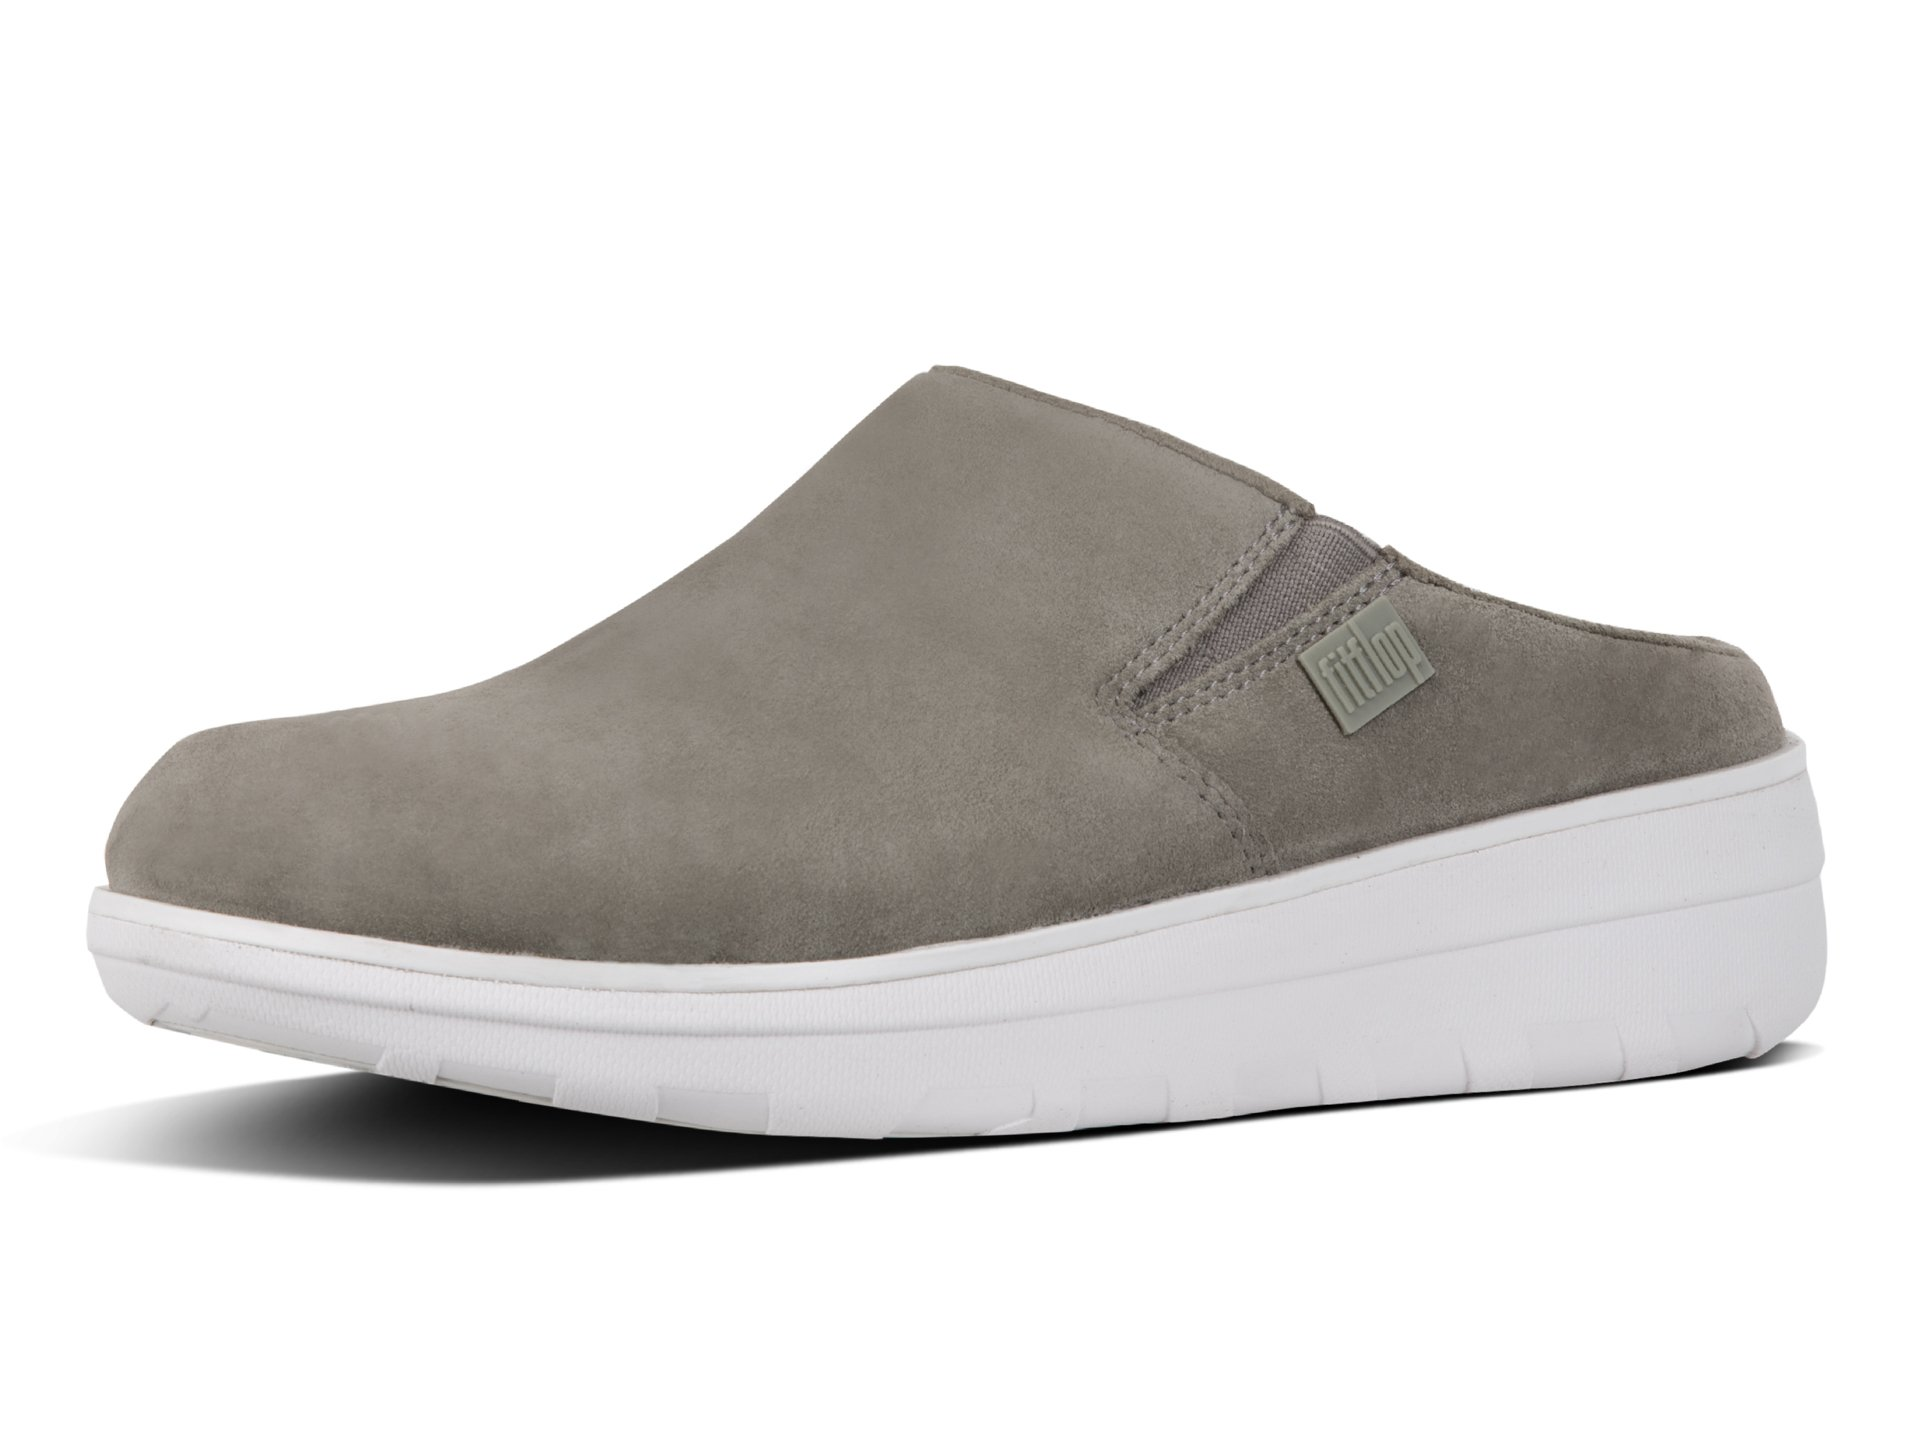 FitFlop Women's Loaff Suede Clogs, Timberwolf, 8